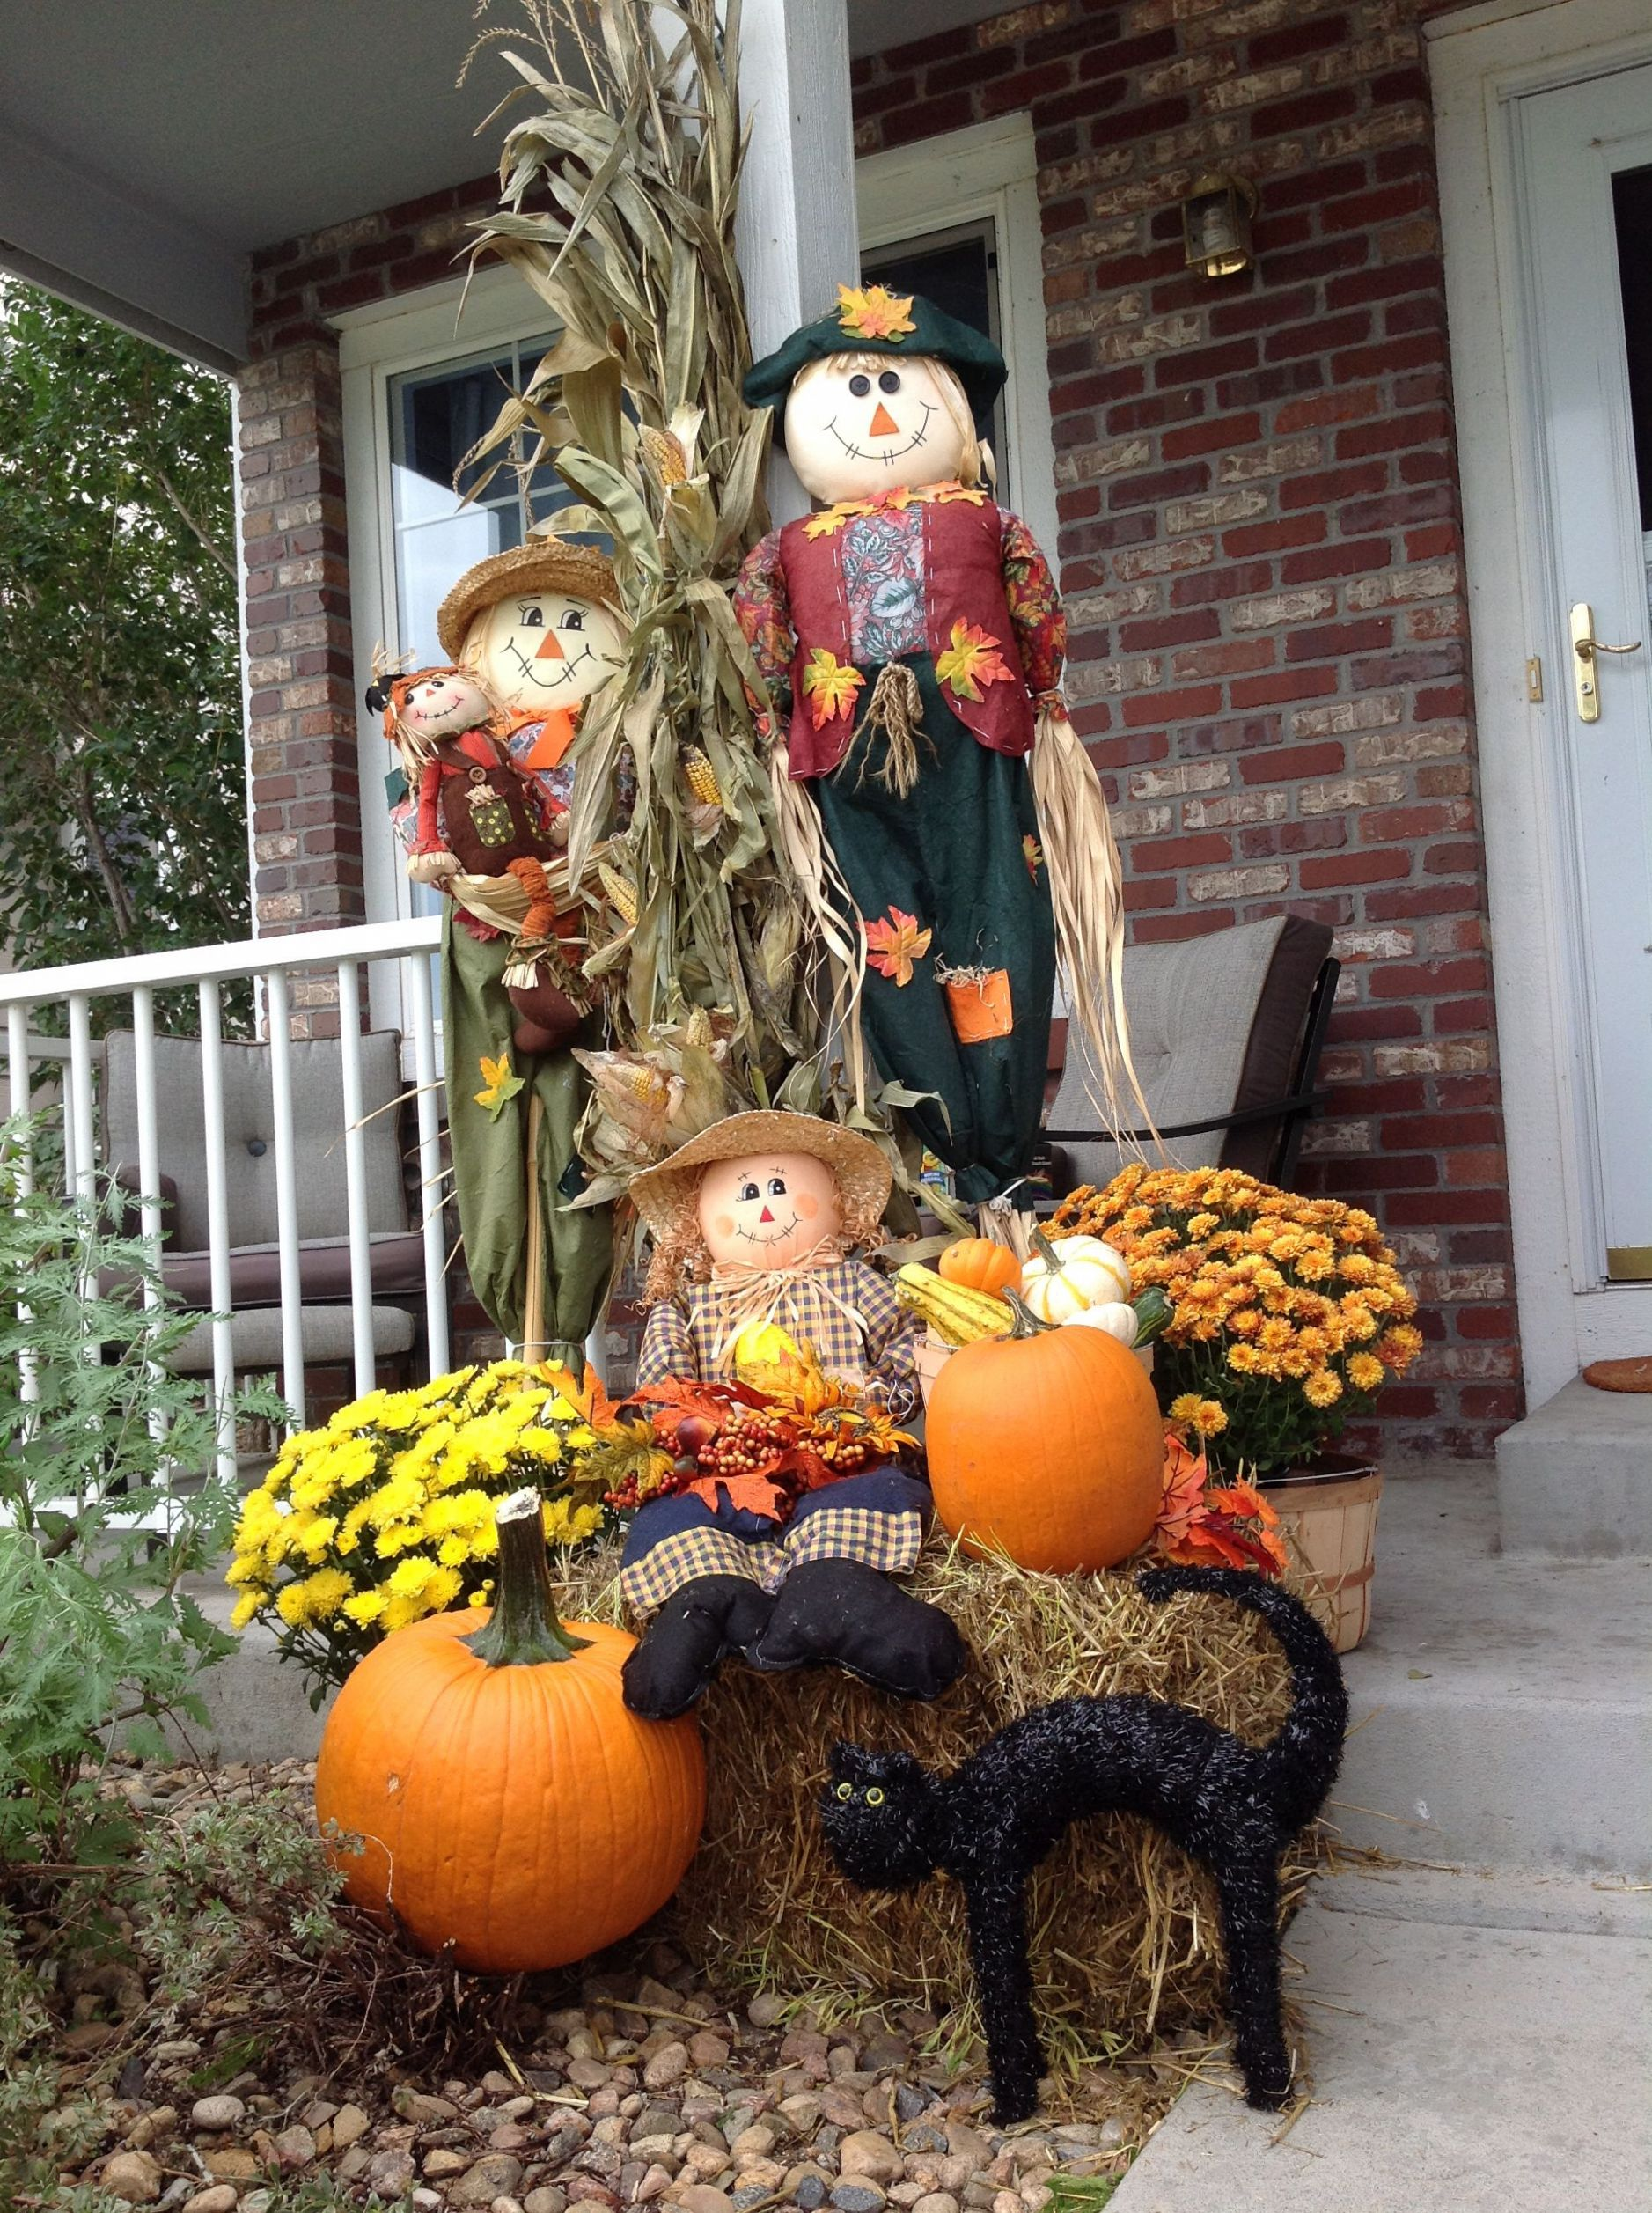 Decorating the porch for fall. | Fall decorations porch, Fall yard ...